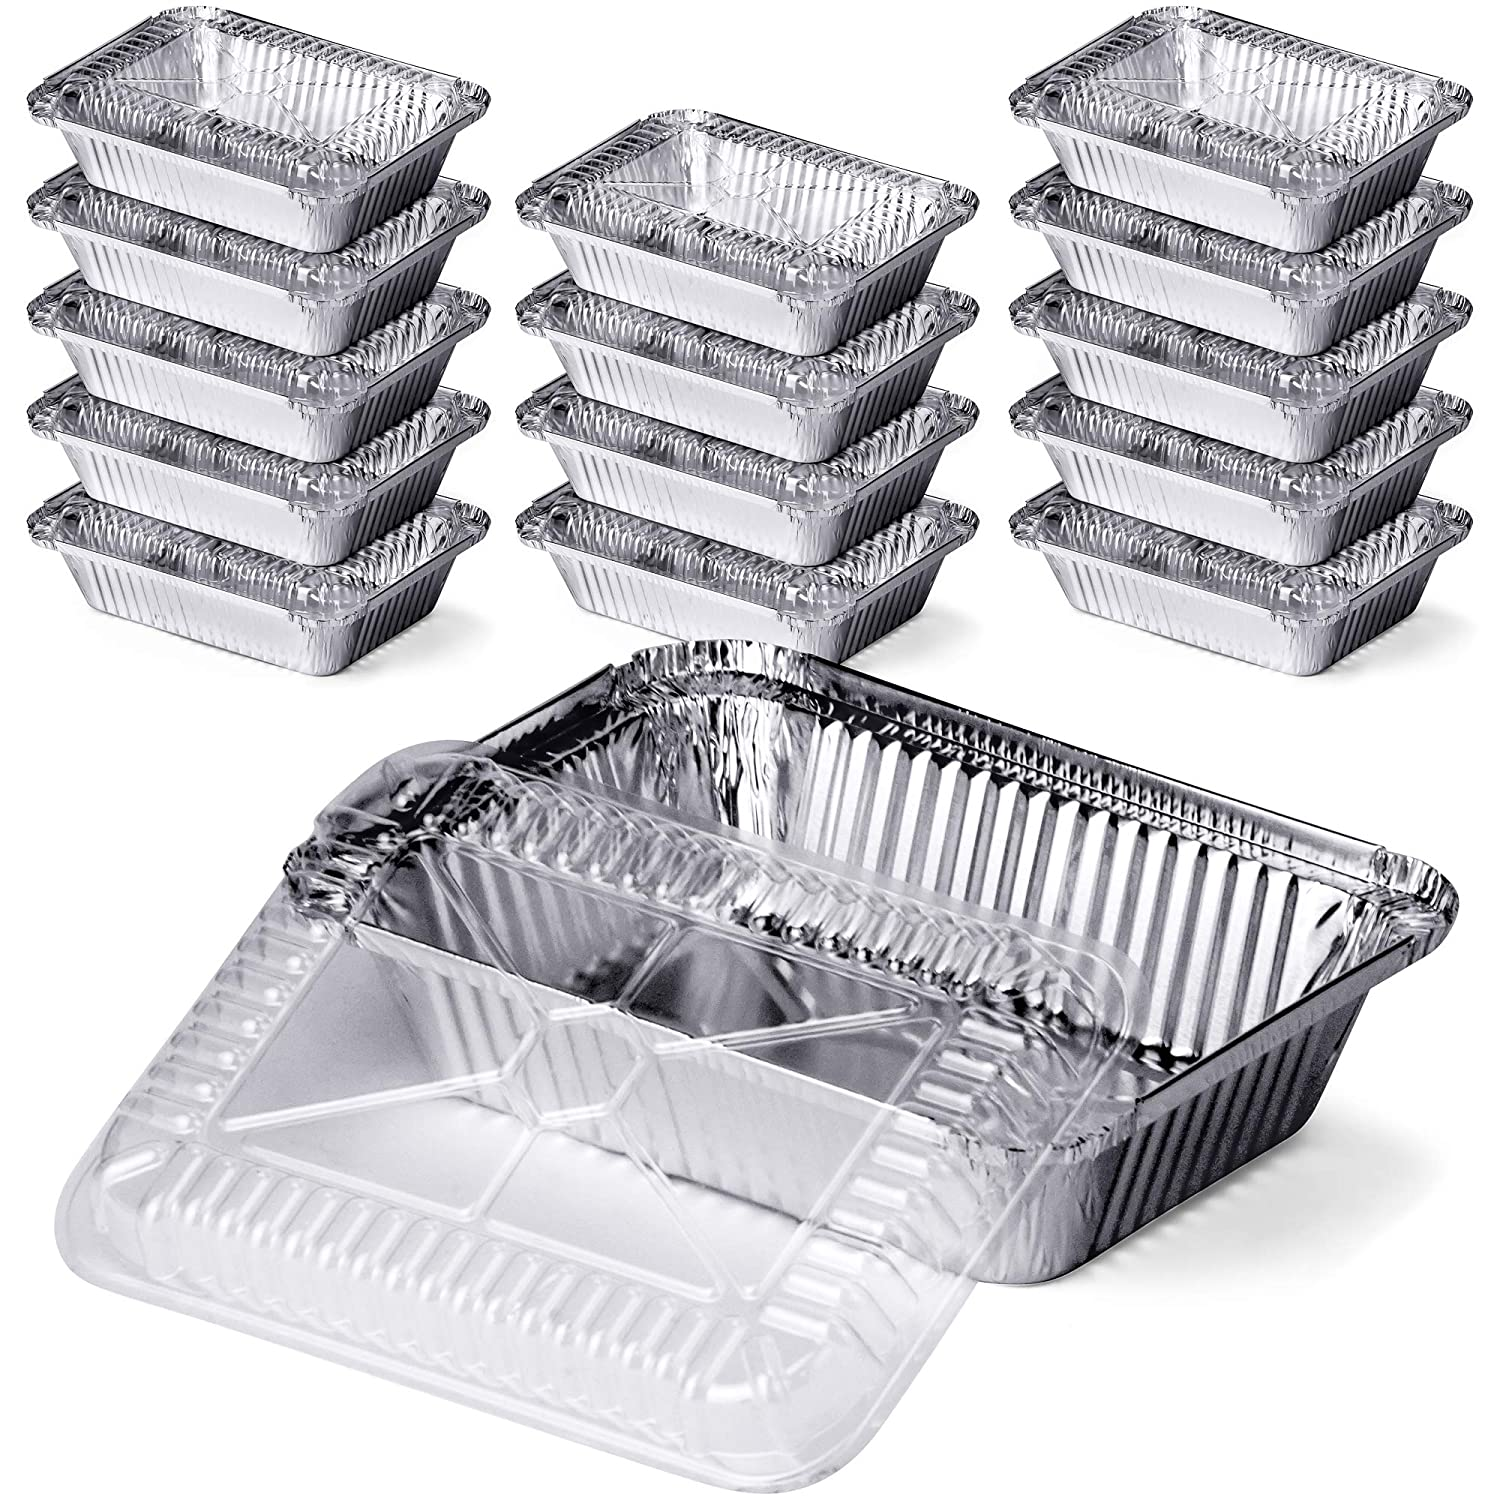 DecorRack 2 1/4 Lb. Aluminum Pan with Dome Lid, Heavy Duty Rectangular Tin Foil Pans, Perfect for Reheating, Baking, Roasting, Meal Prep, to-Go Containers, Environmentally Friendly (Pack of 14)